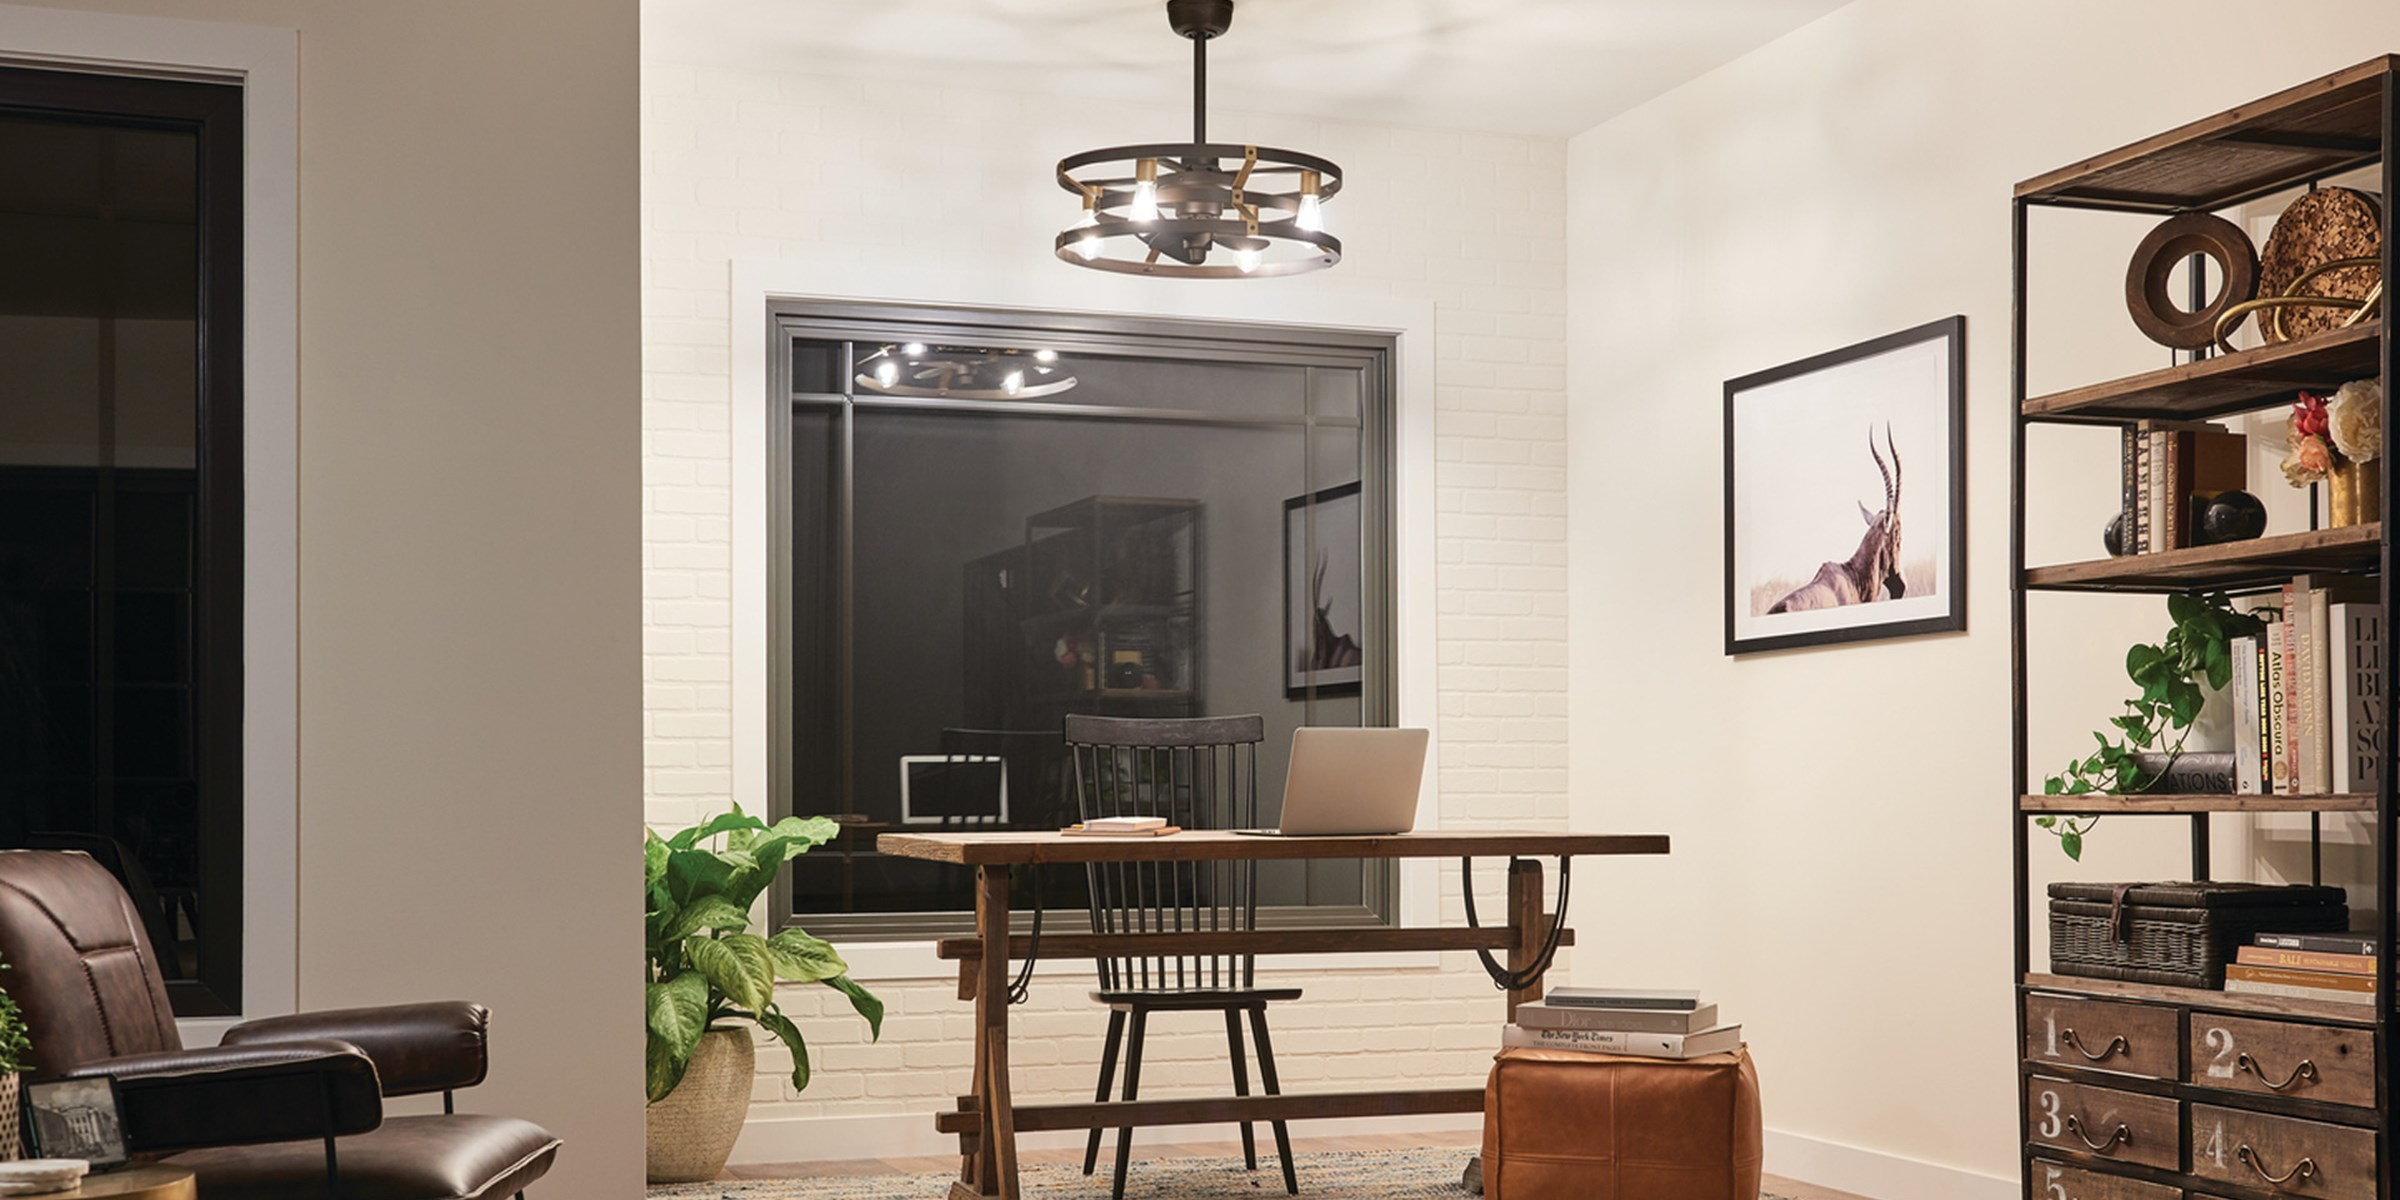 Night time office image featuring Cavelli ceiling fan 300040SNB